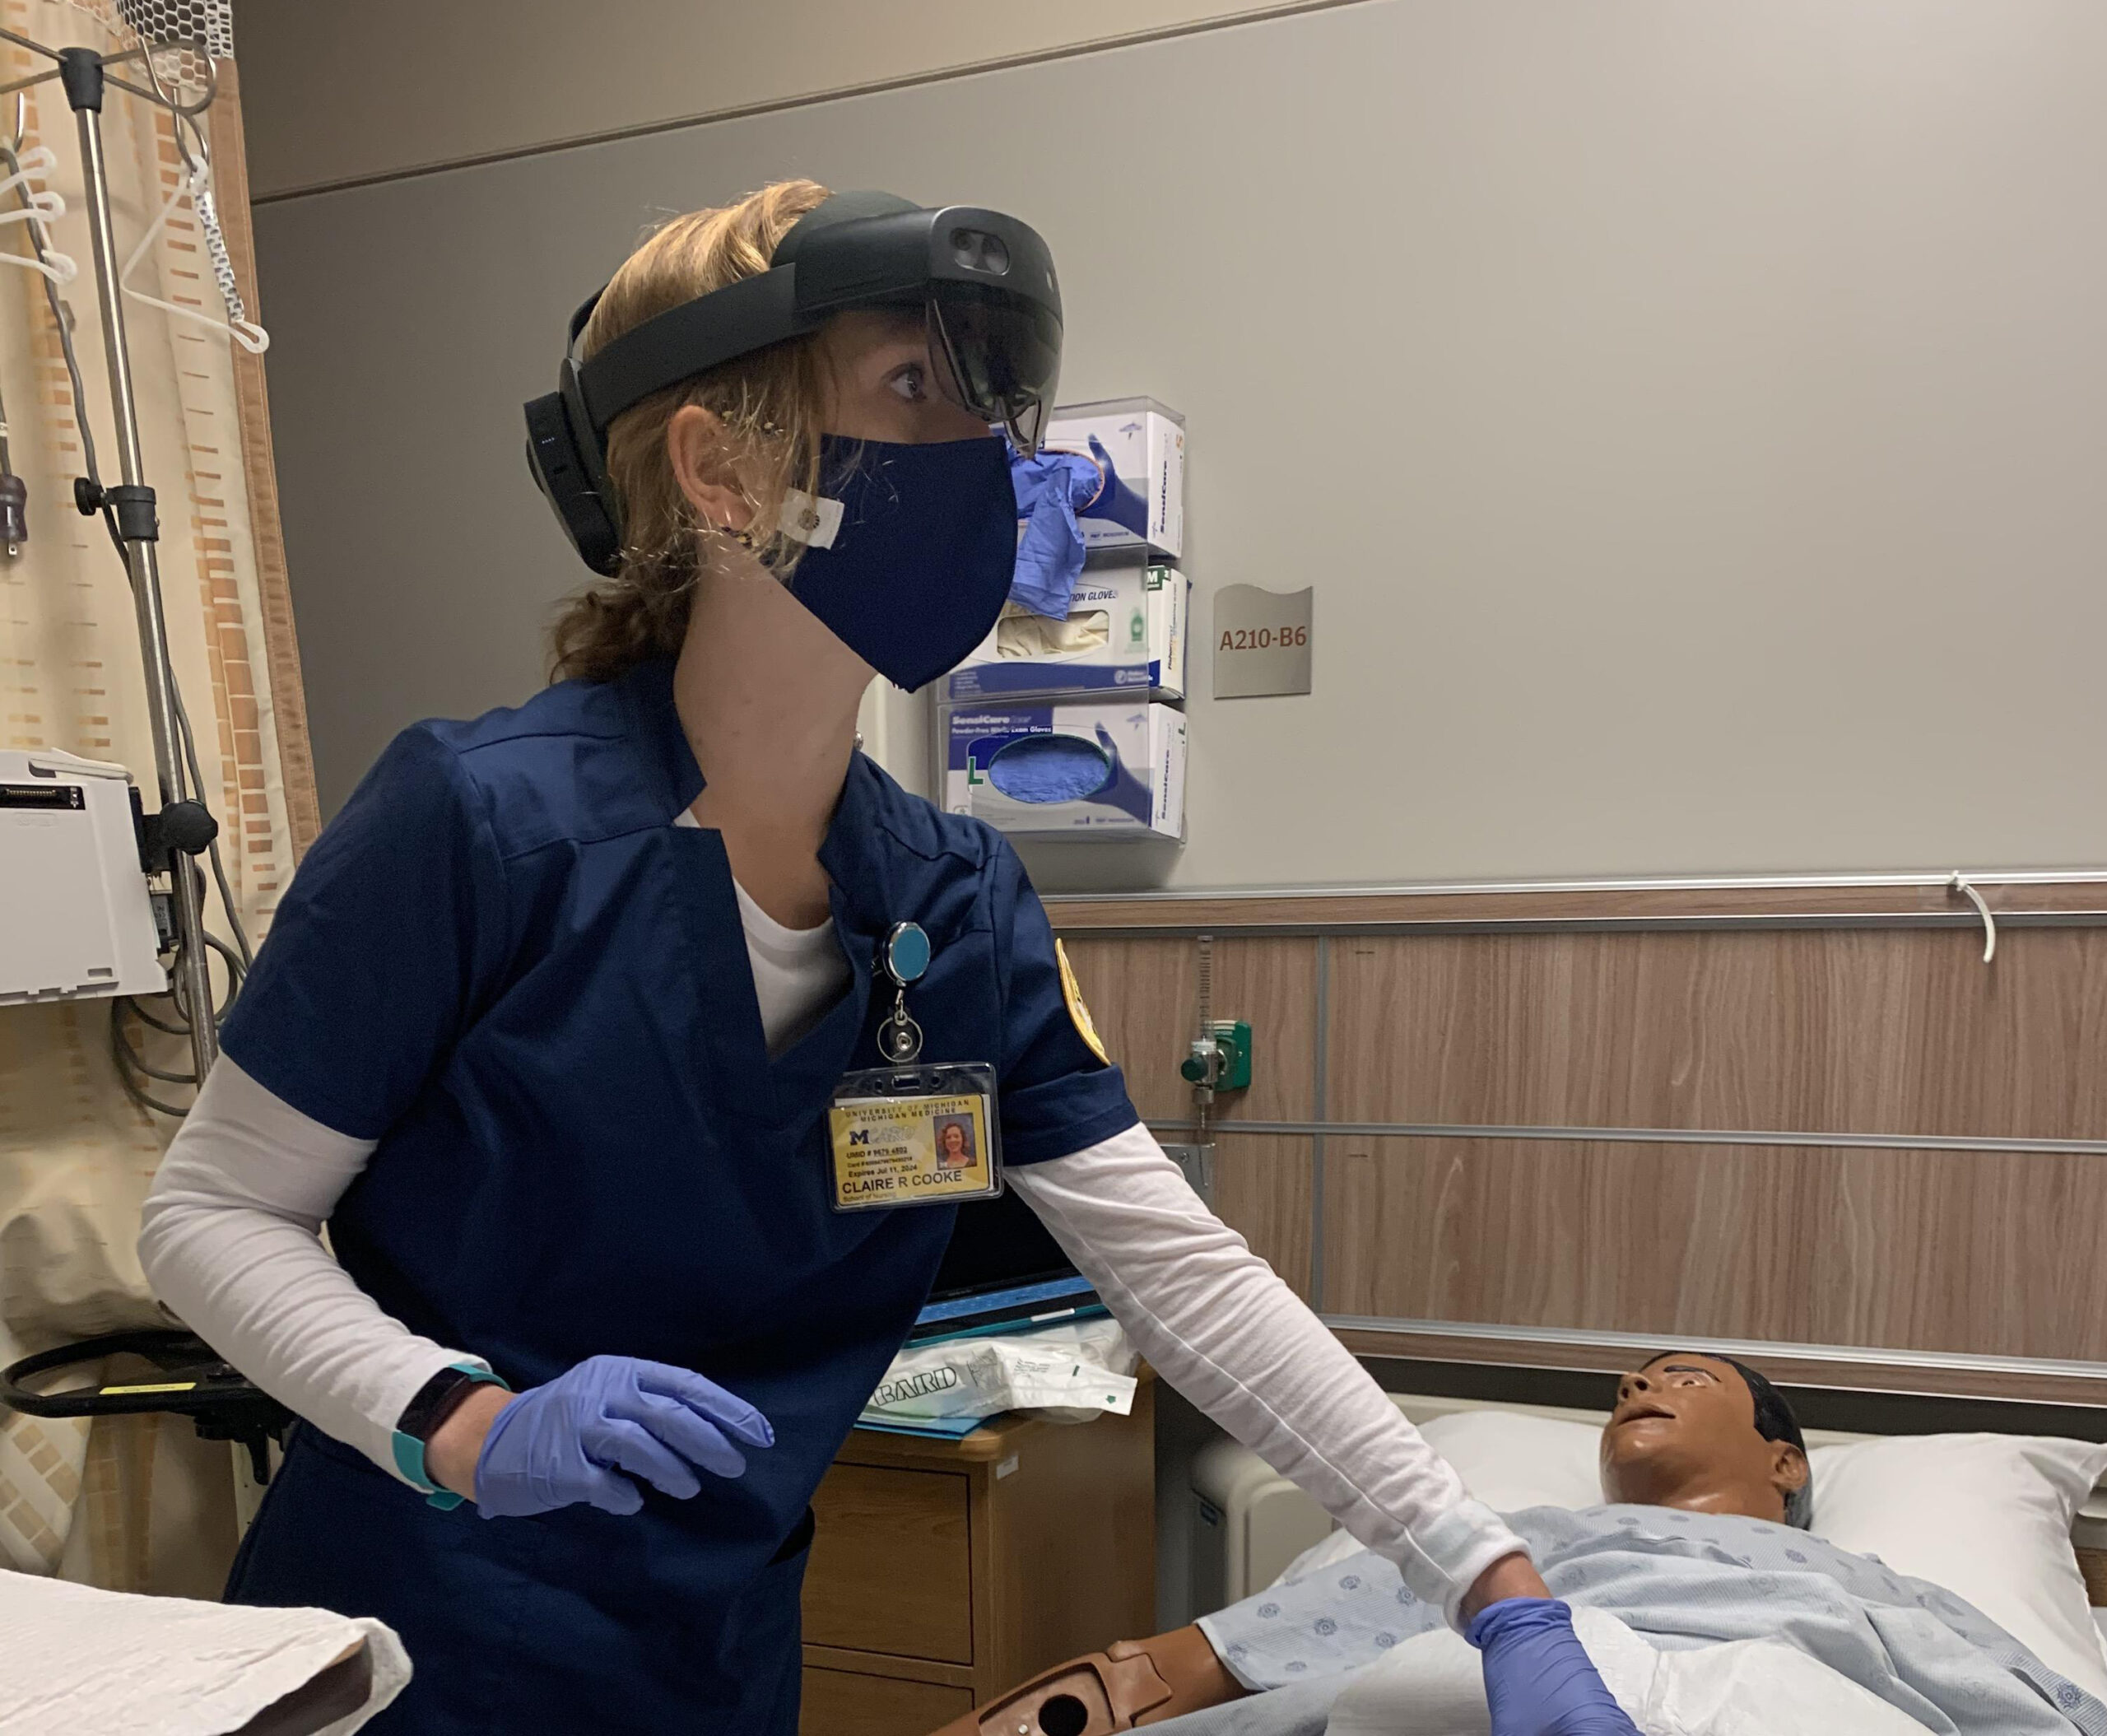 Student Claire Cook performing a procedure using the HoloLens2. Image credit: U-M School of Nursing